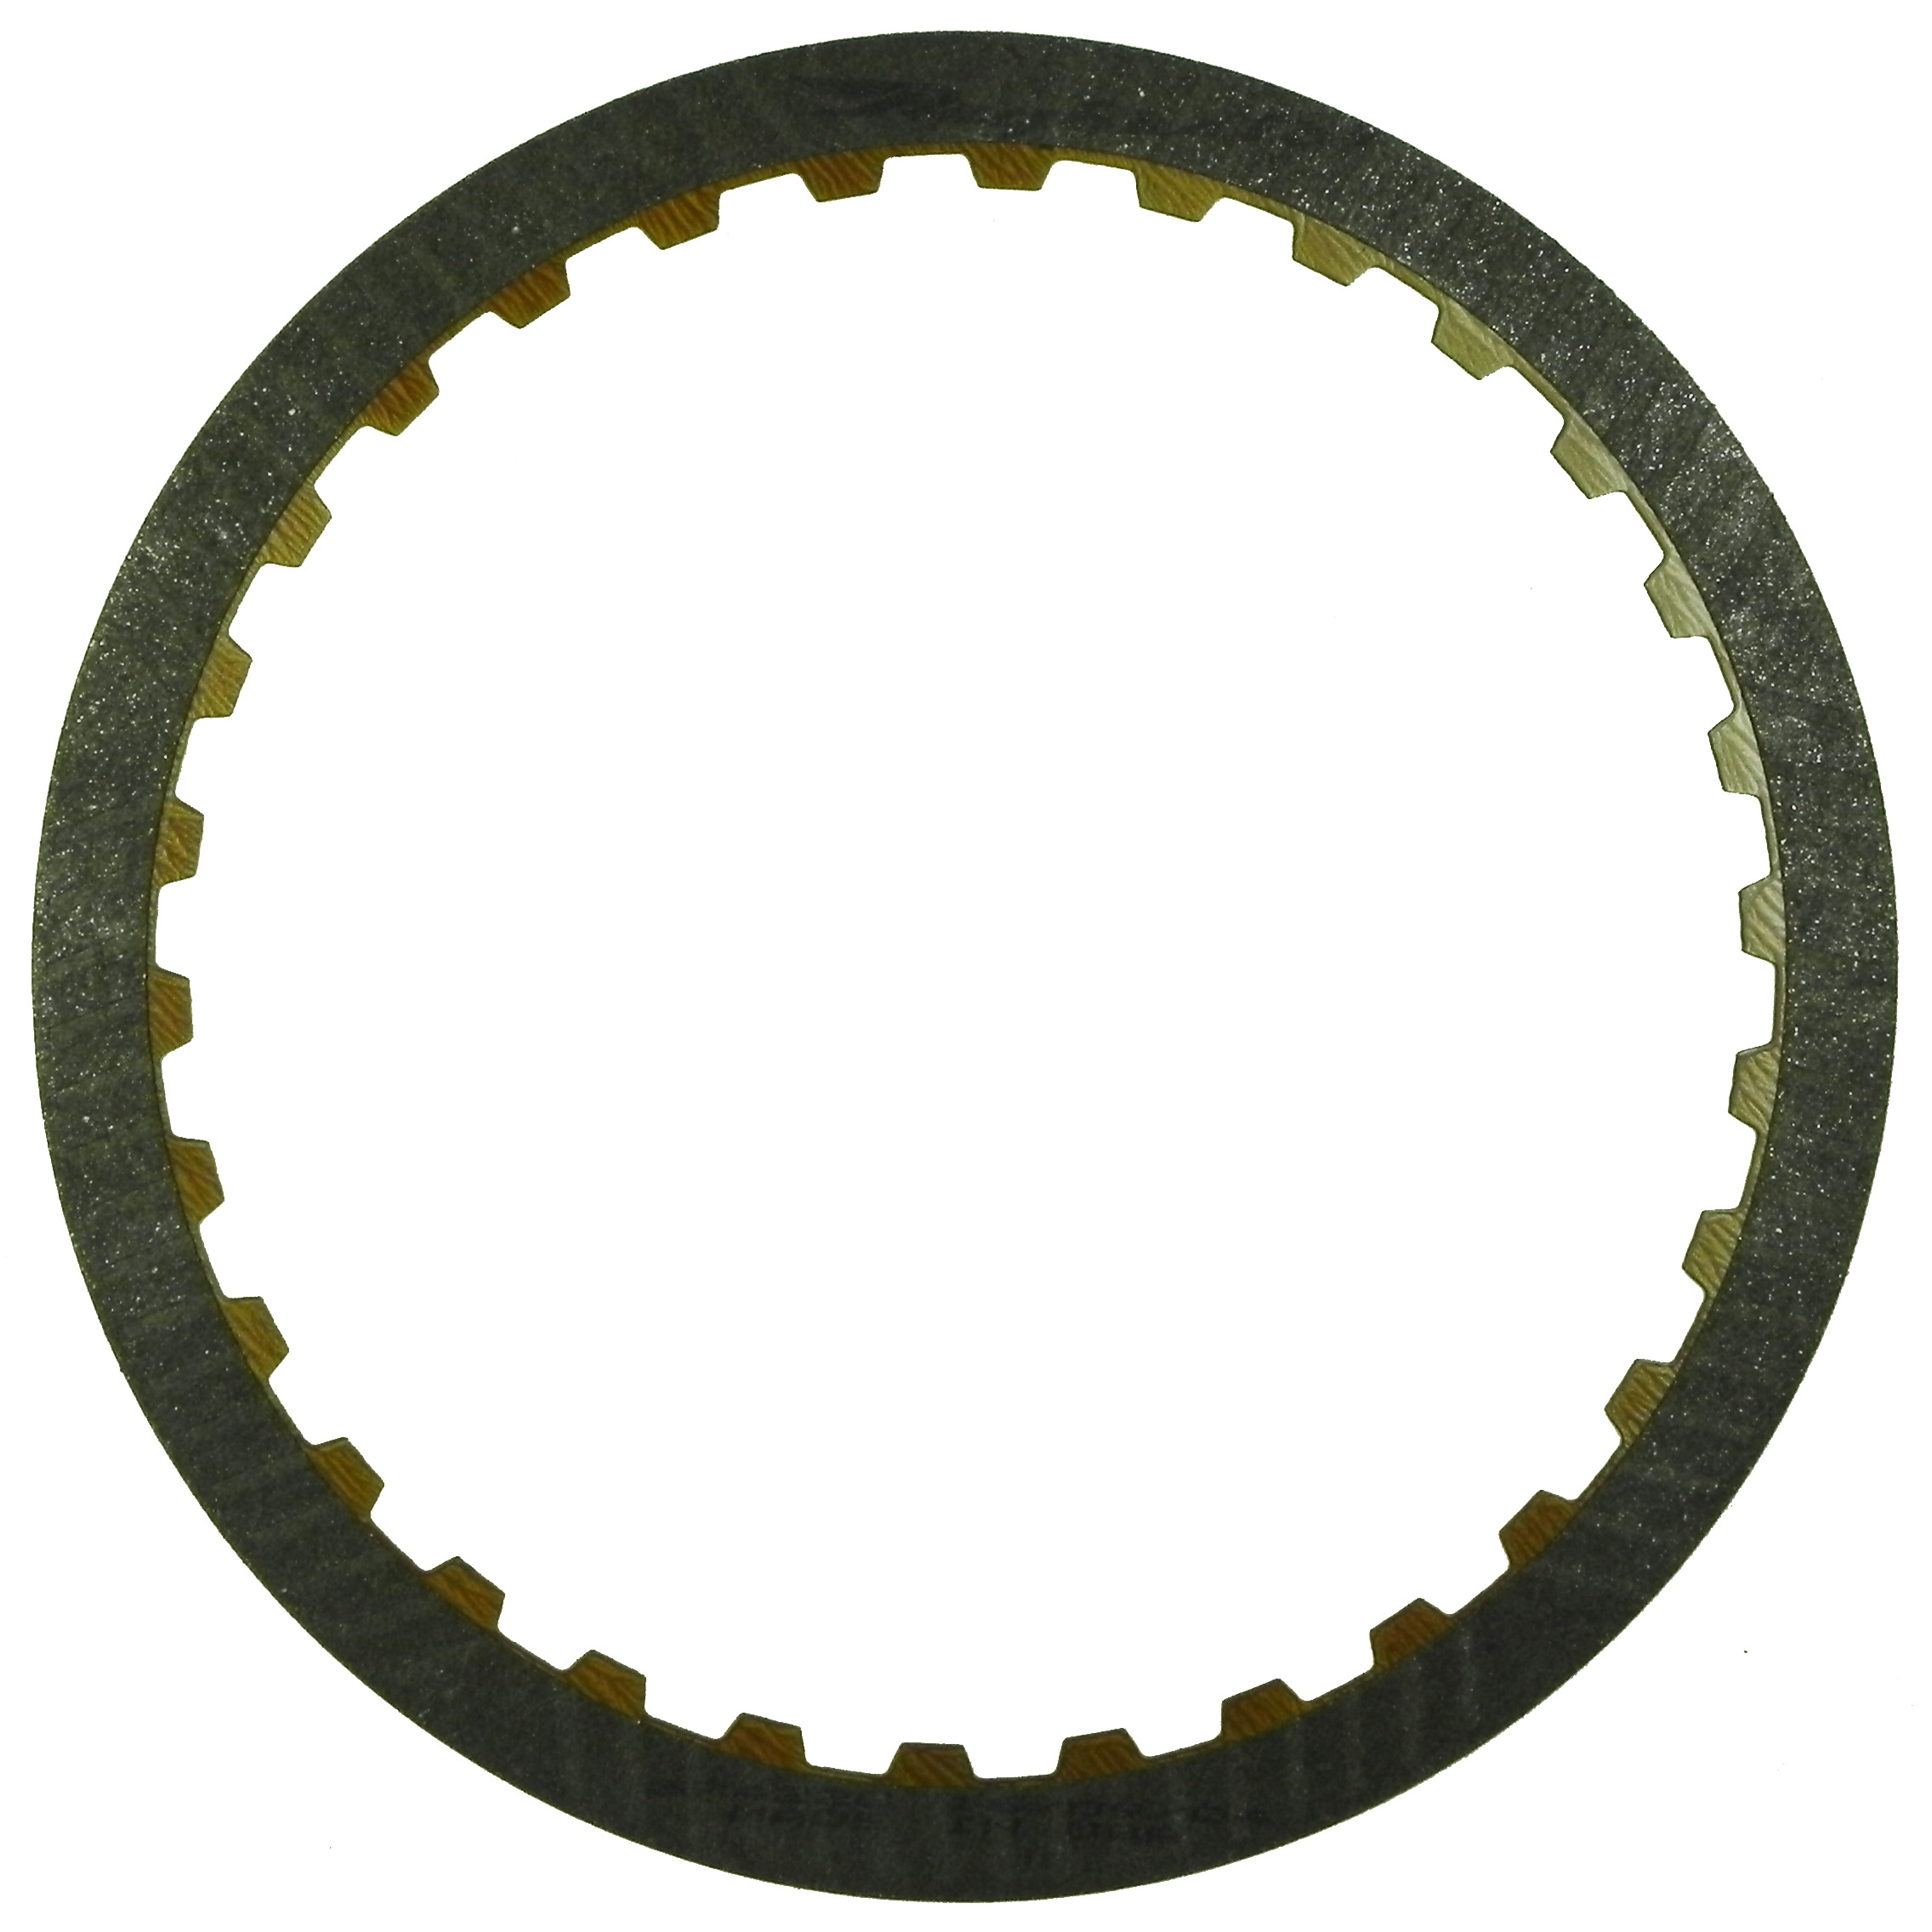 R574220 | 1995-2006 Friction Clutch Plate High Energy B (Direct/Reverse), D (Low/Reverse), E (3/4) Clutch (Waved) High Energy